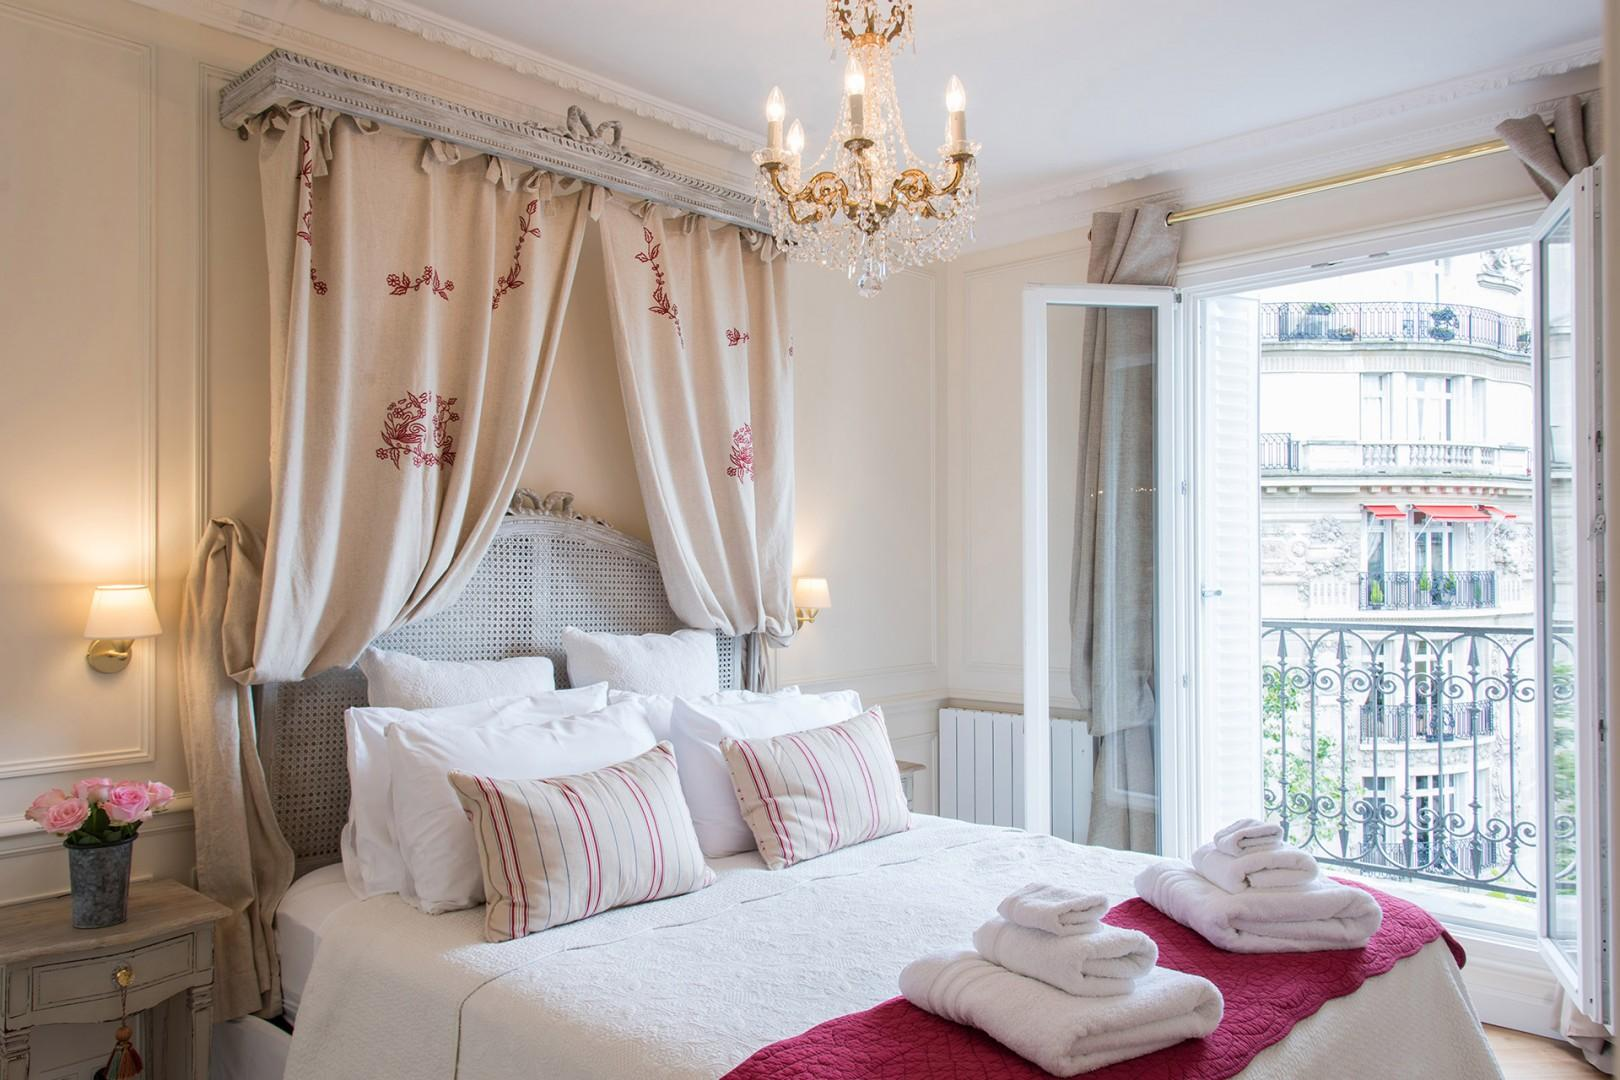 Relax in the romantic bedroom 1 with large French windows.